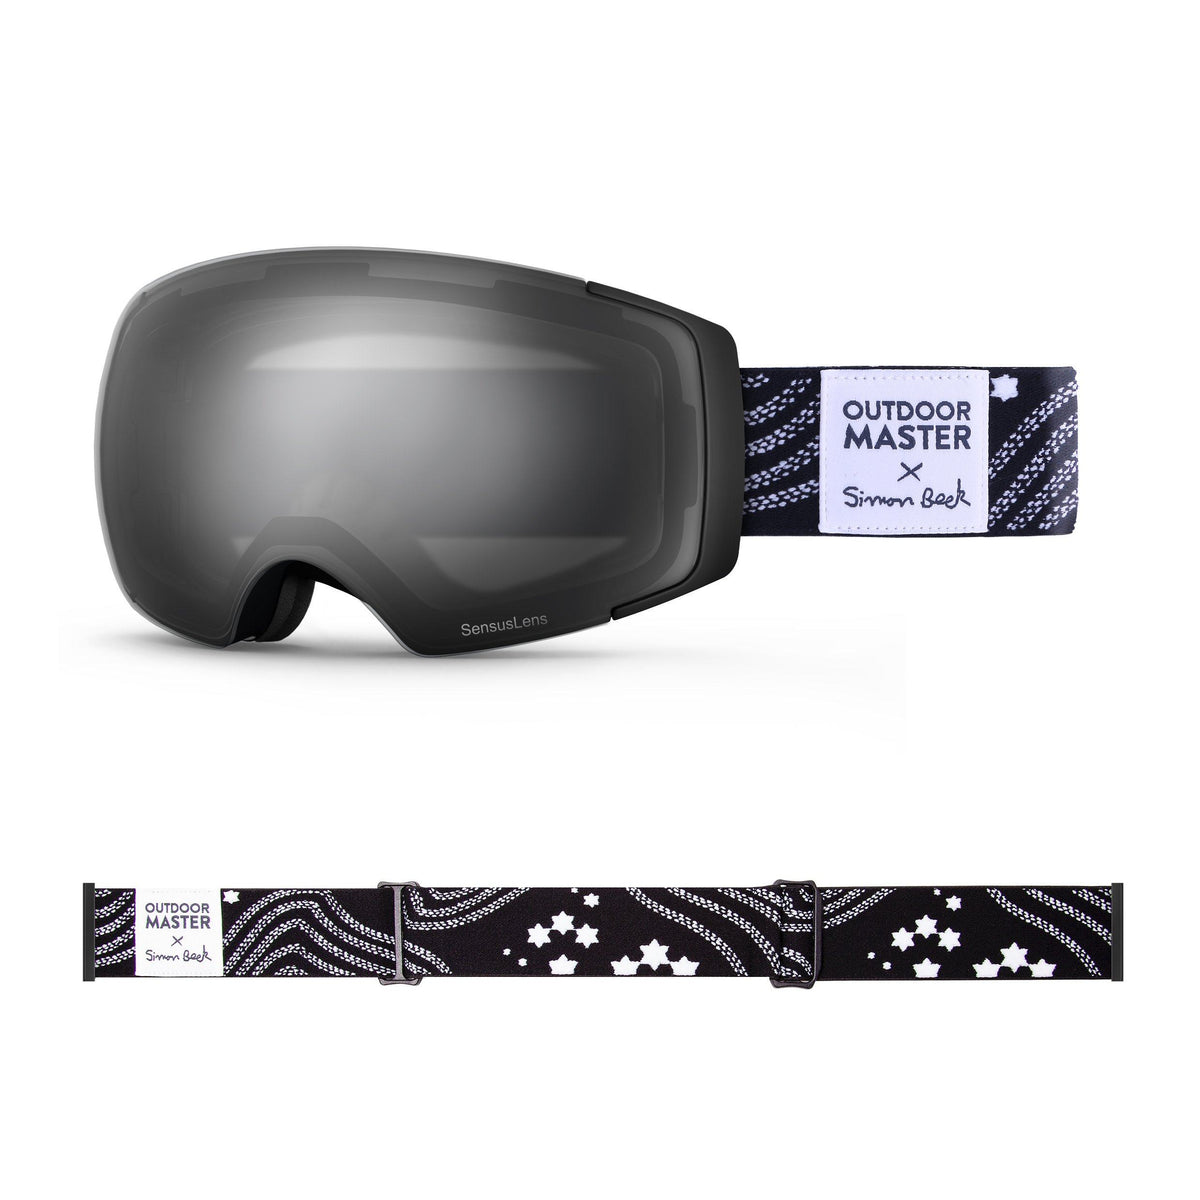 OutdoorMaster x Simon Beck Ski Goggles Pro Series - Snowshoeing Art Limited Edition OutdoorMaster GreenLens VLT 10% TAC Grey With REVO Silver Polarized Star Road-Black